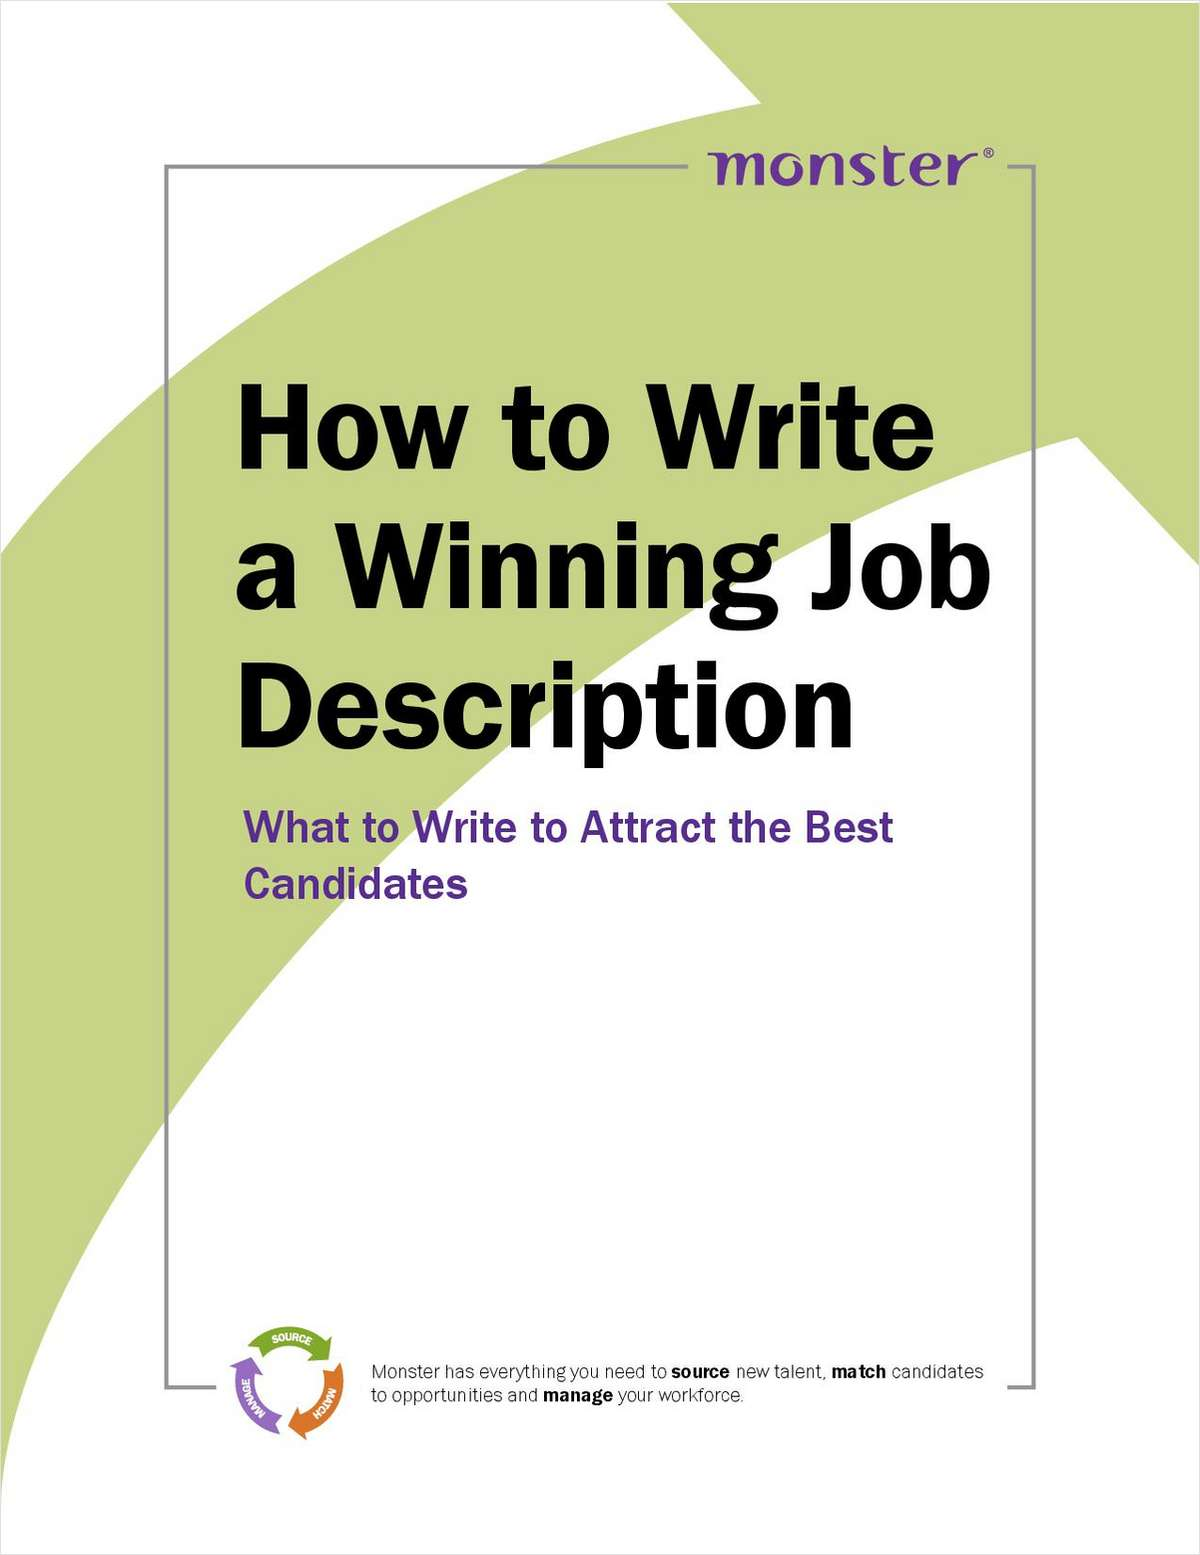 How to Write a Winning Job Description